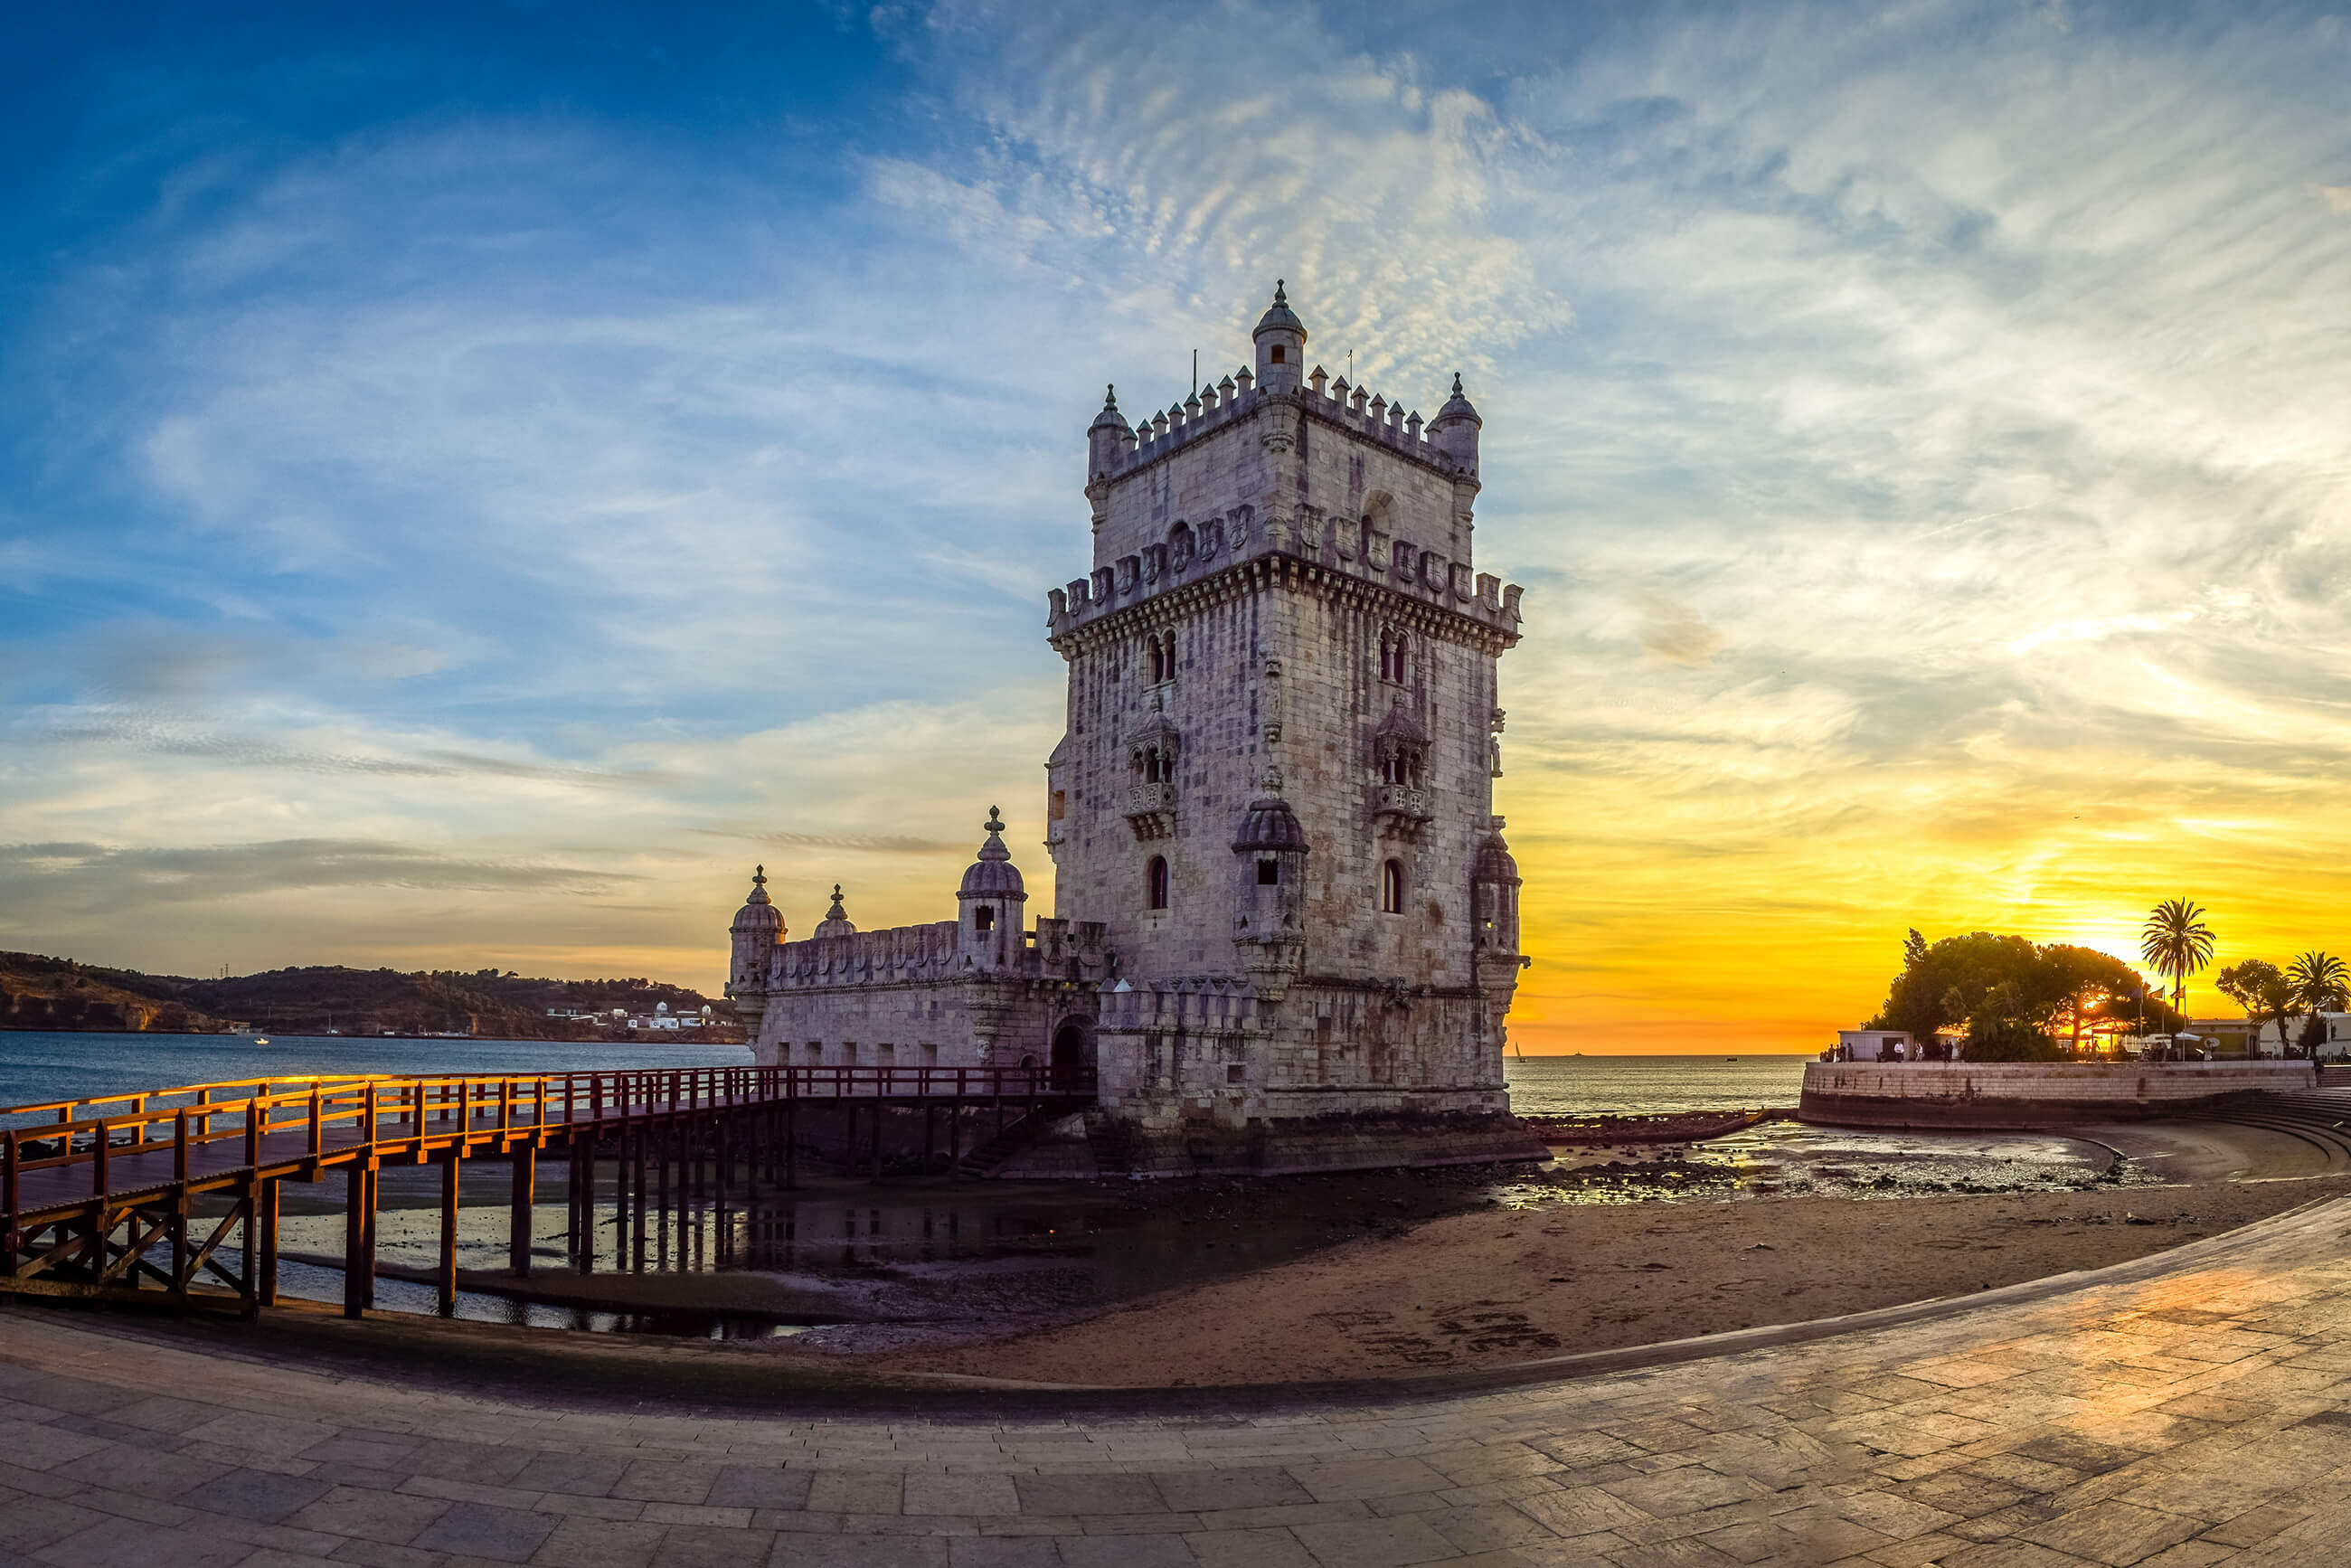 https://bubo.sk/uploads/galleries/16329/pxb_portugalsko_belem-tower-2809818.jpg